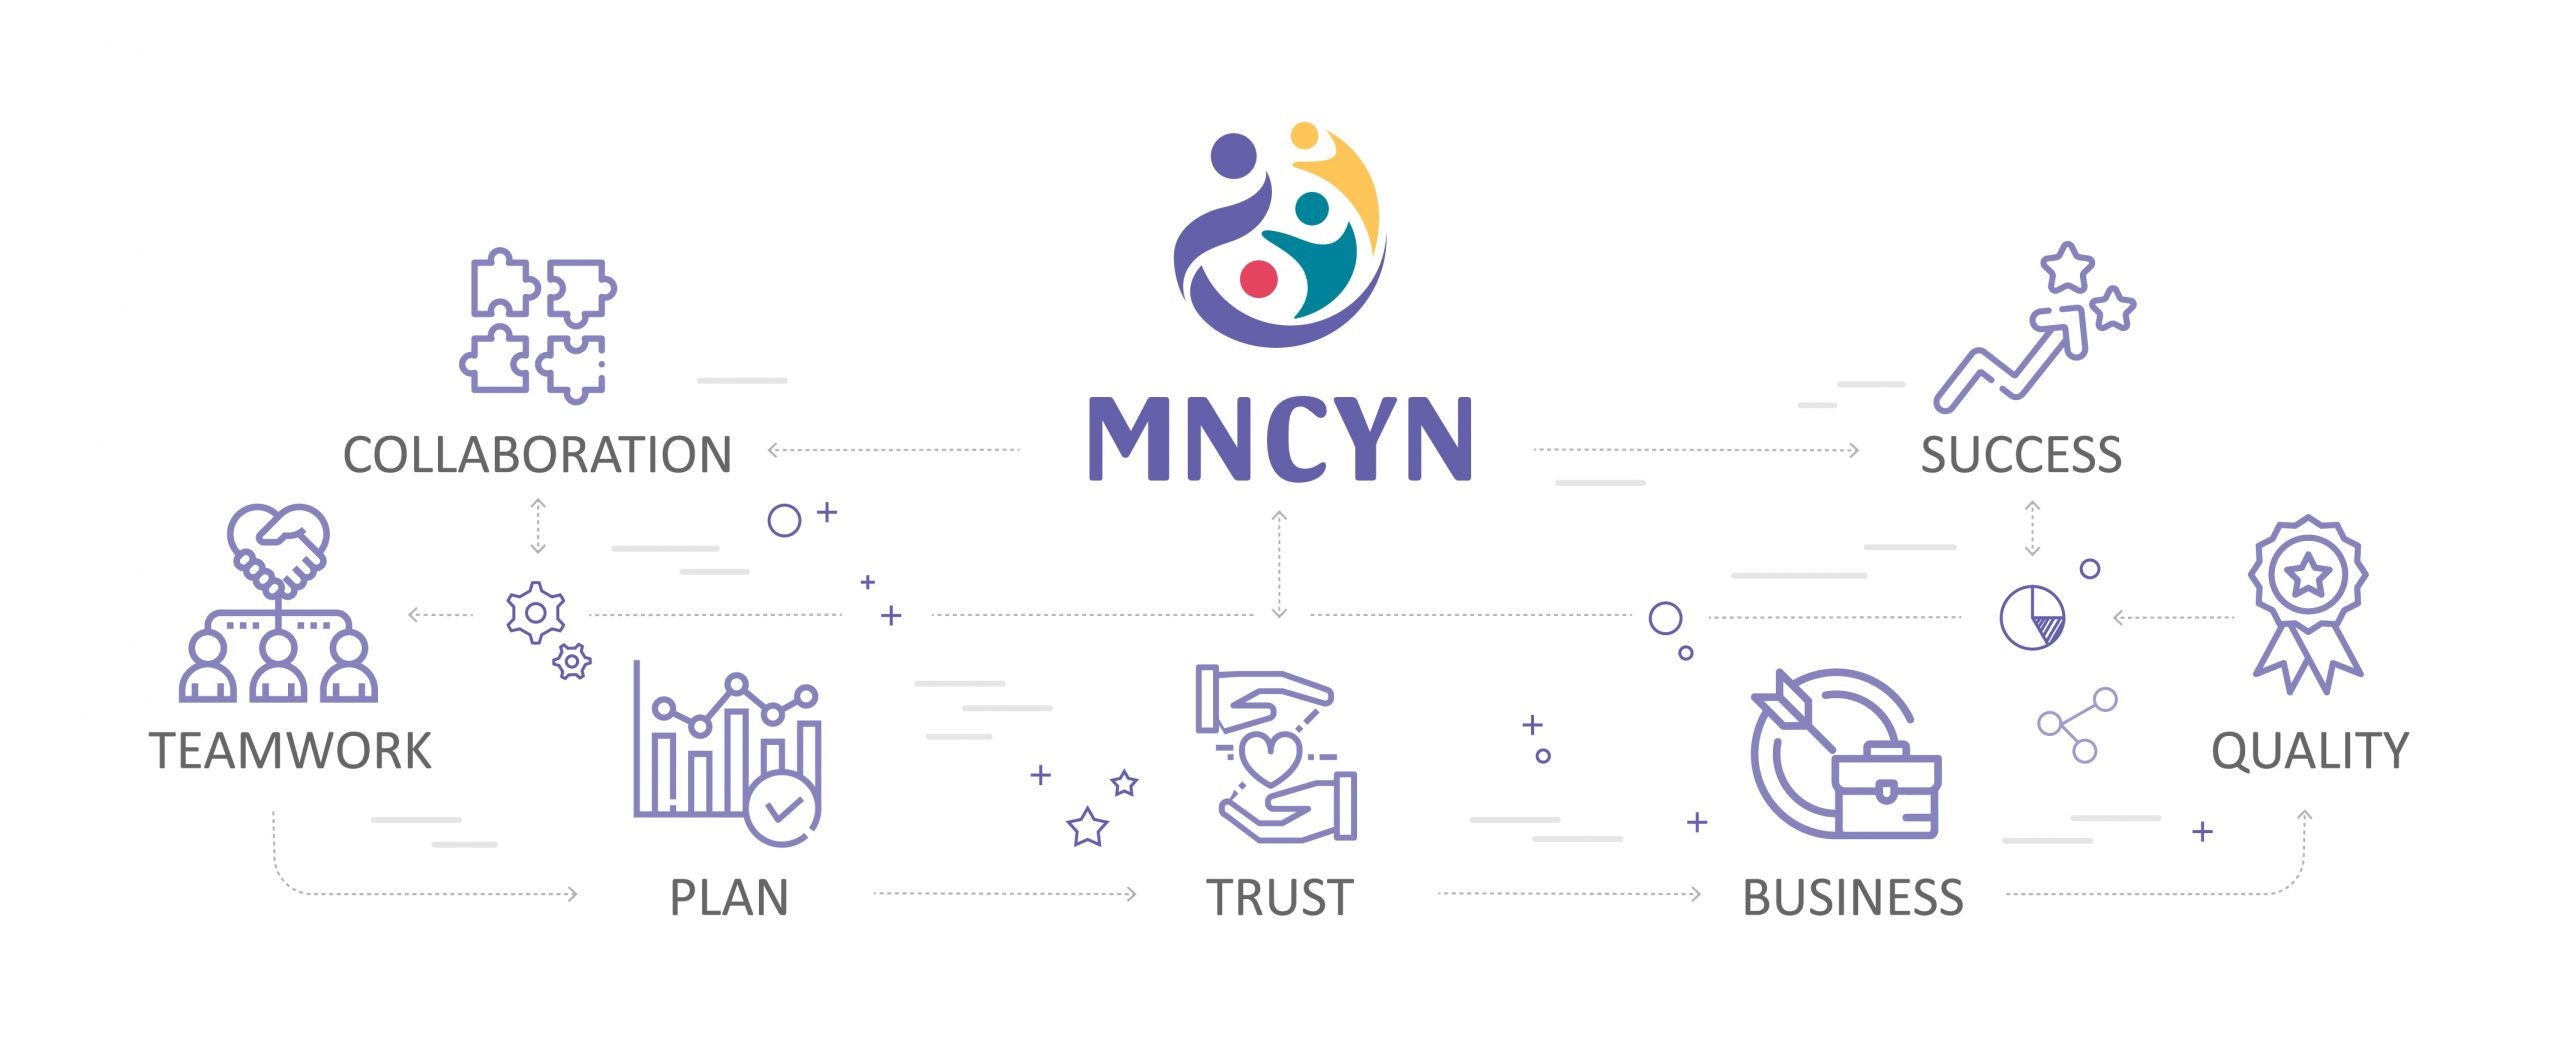 Diagram of MNCYN network emphasizing collaboration, teamwork, planning, success, trust, quality and administration.